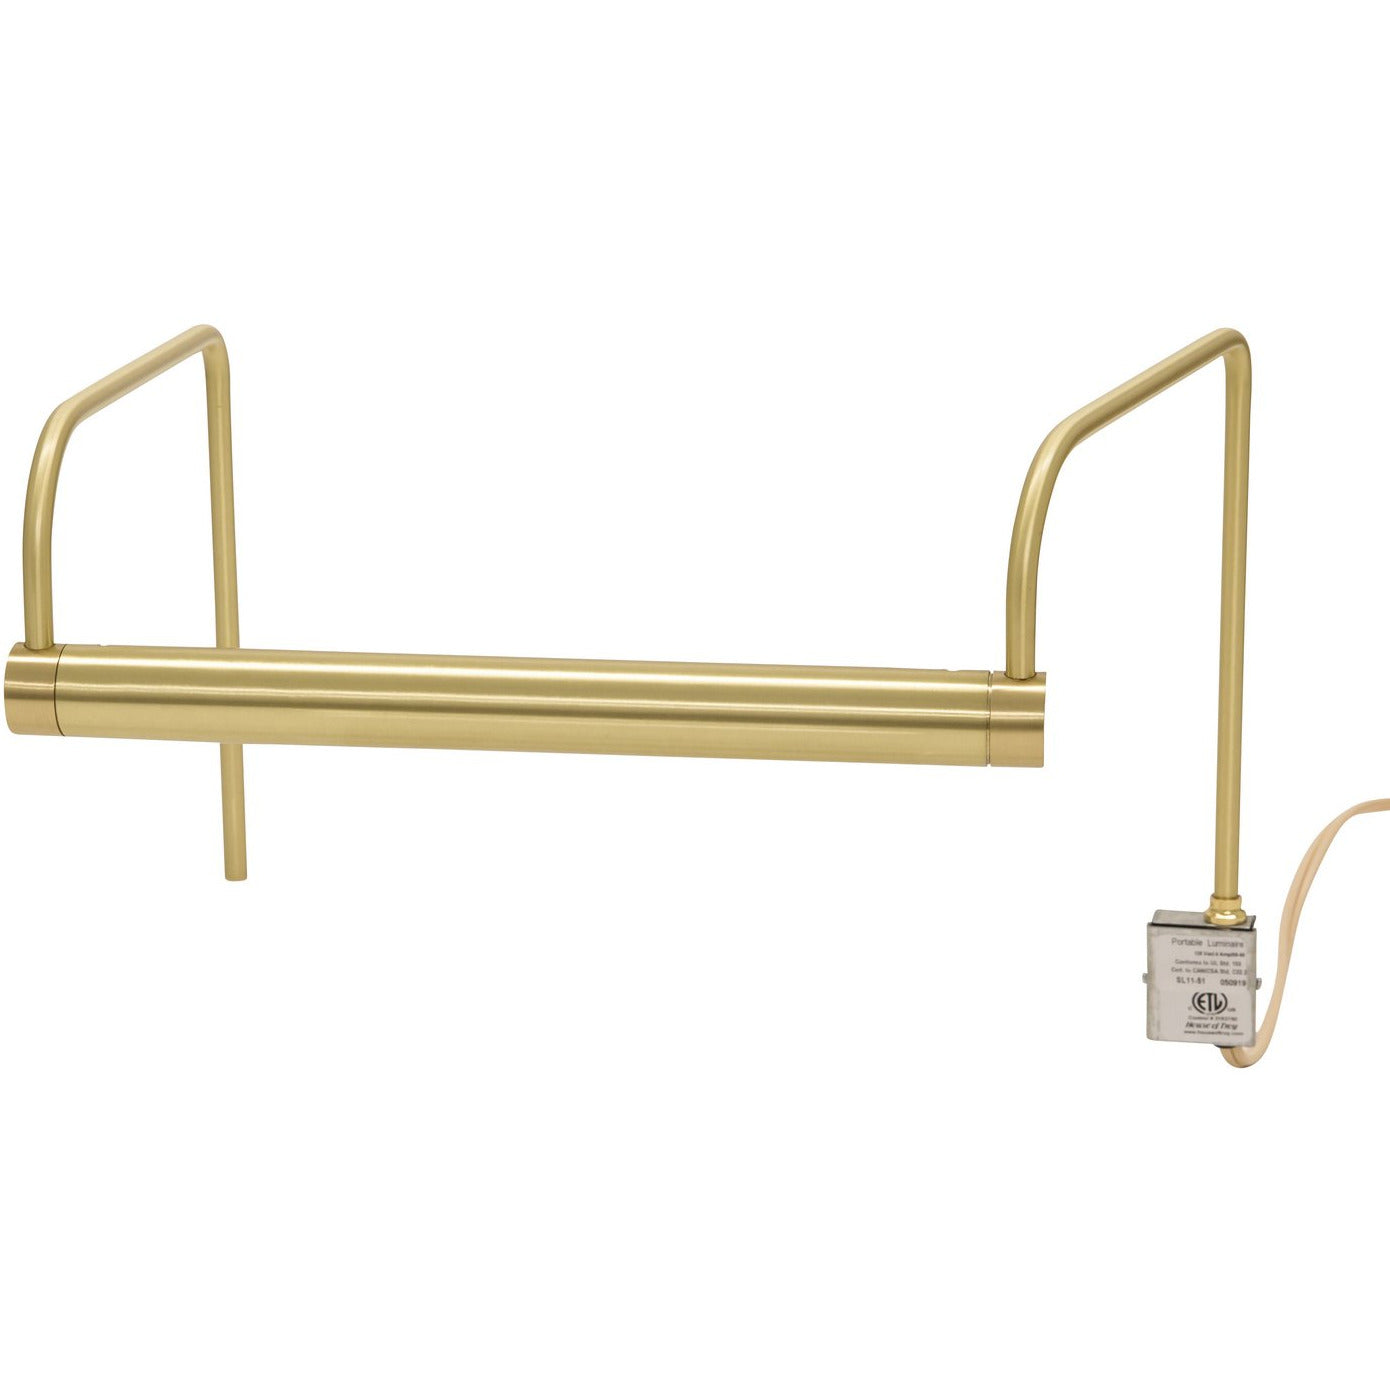 House of Troy - SL11-51 - Two Light Picture Light - Slim-line - Satin Brass